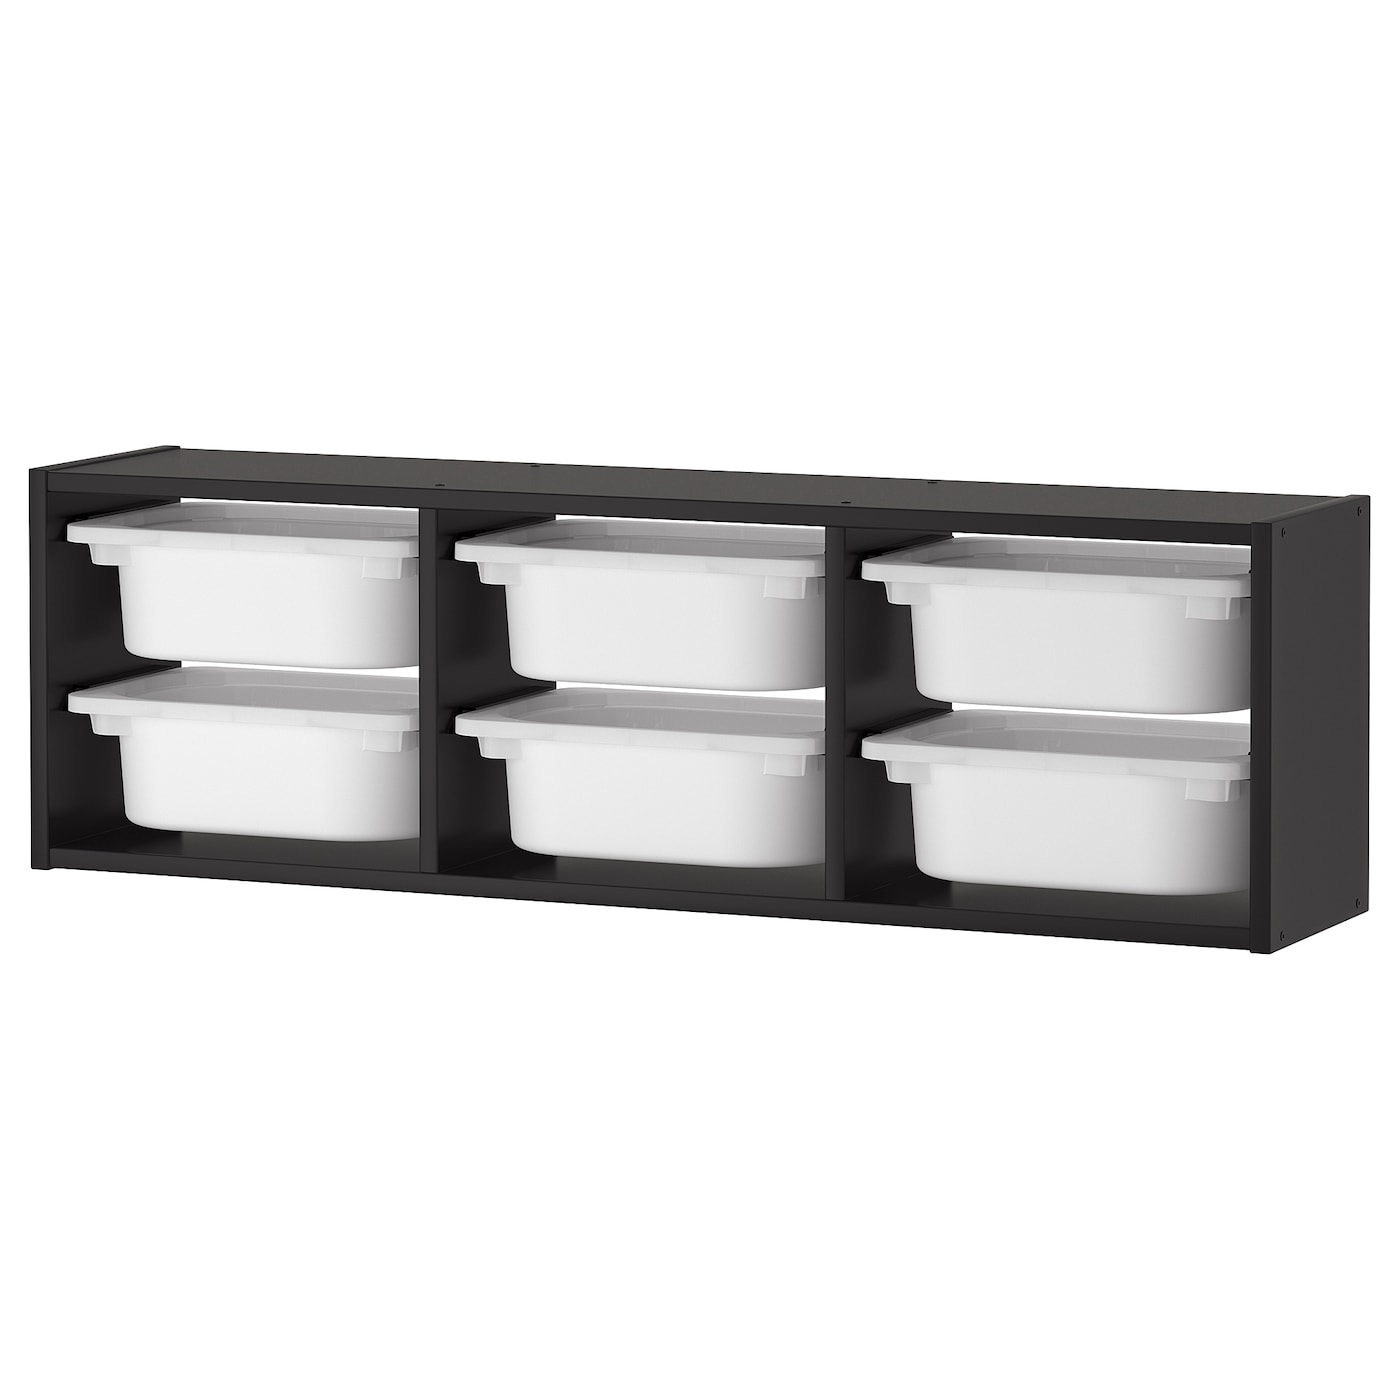 trofast rangement mural noir blanc 99 x 21 x 30 cm ikea. Black Bedroom Furniture Sets. Home Design Ideas